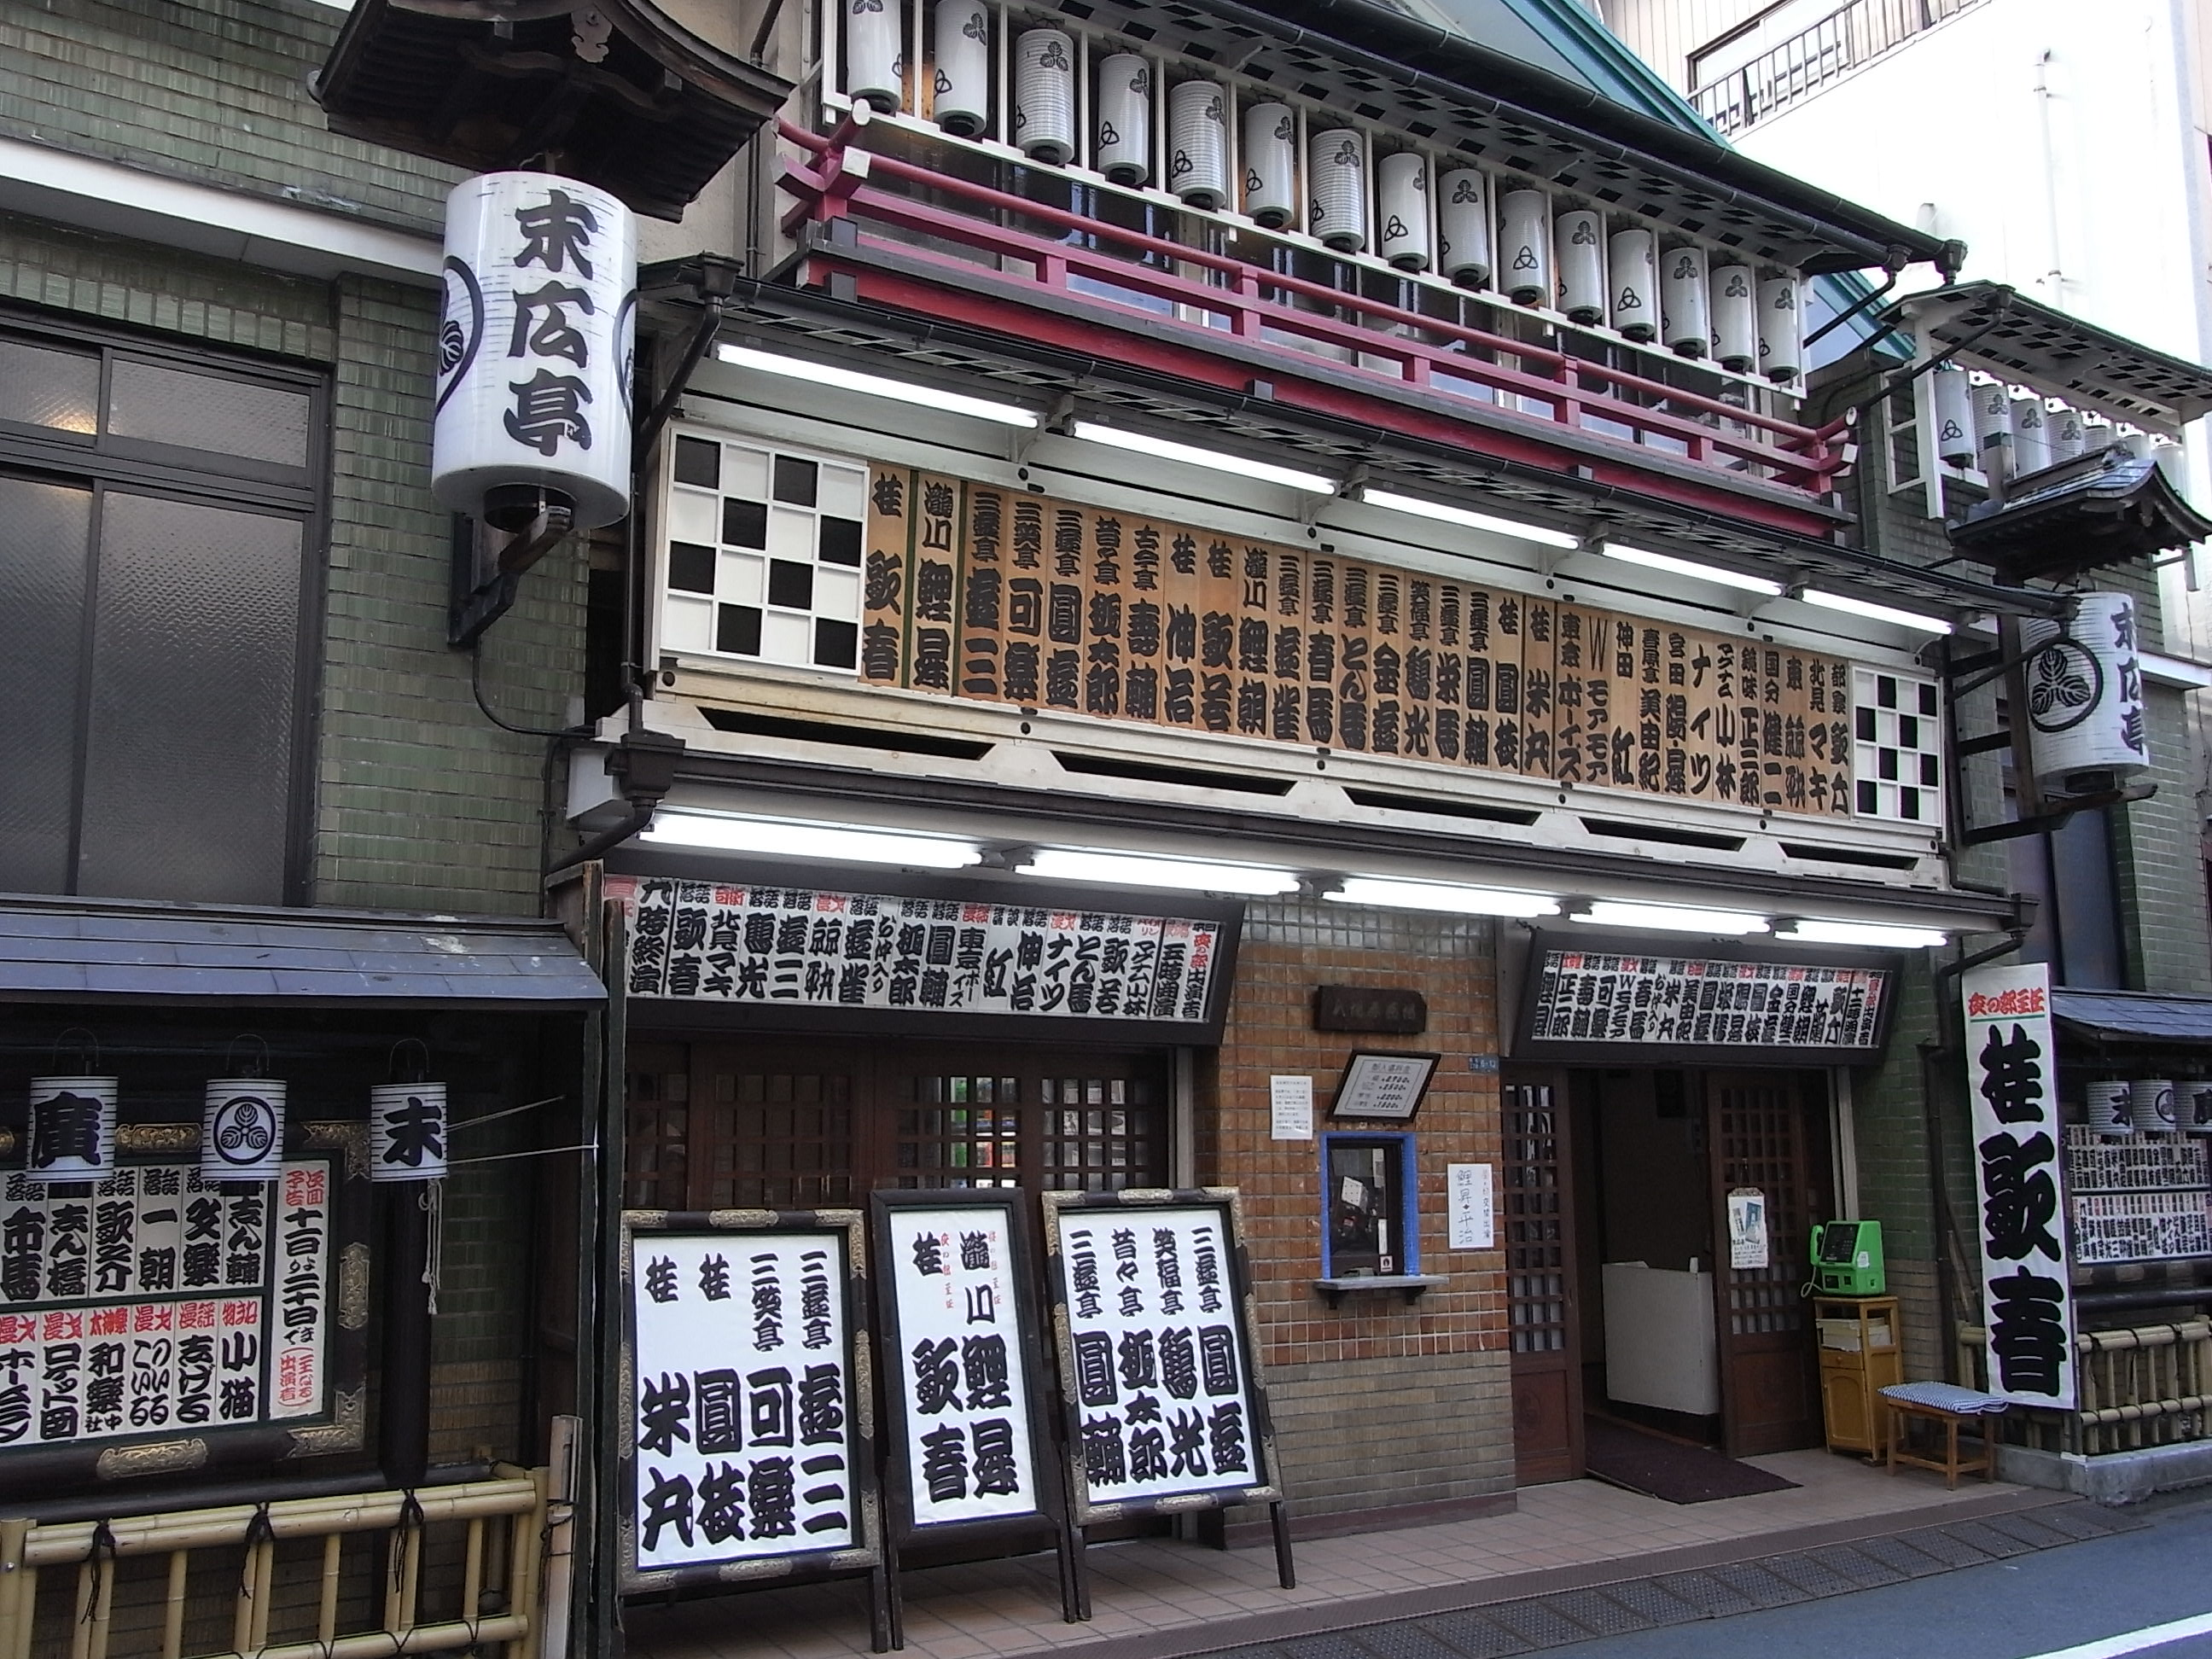 https://upload.wikimedia.org/wikipedia/commons/d/dd/Shinjuku_Suehirotei-1.jpg